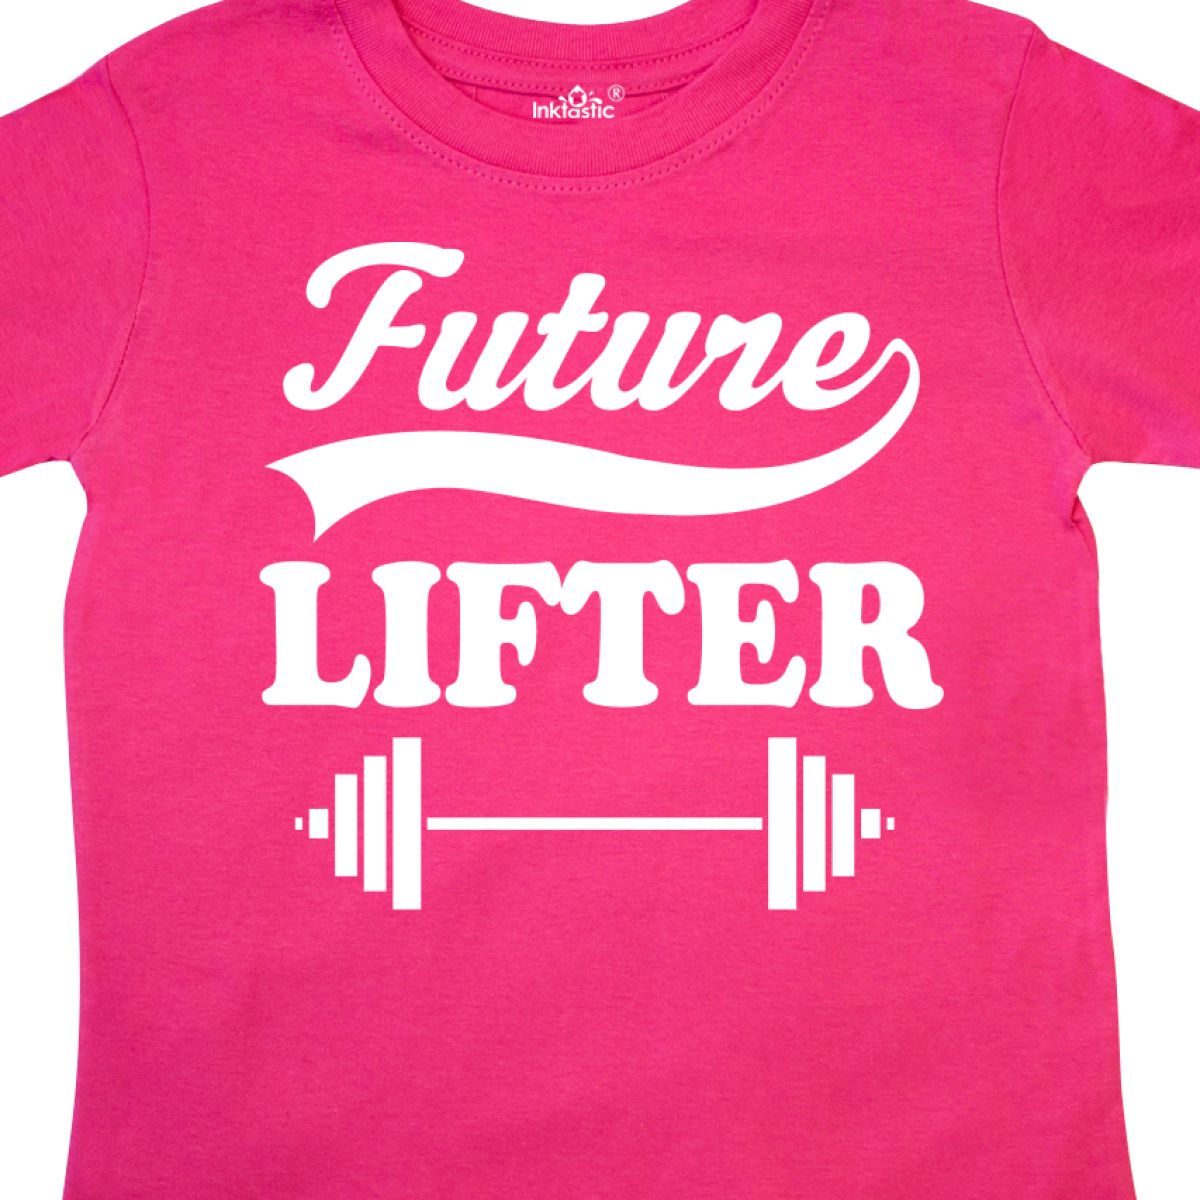 Inktastic-Future-Lifter-Weightlifting-Toddler-T-Shirt-Weightlifter-Lifting-Kids thumbnail 4